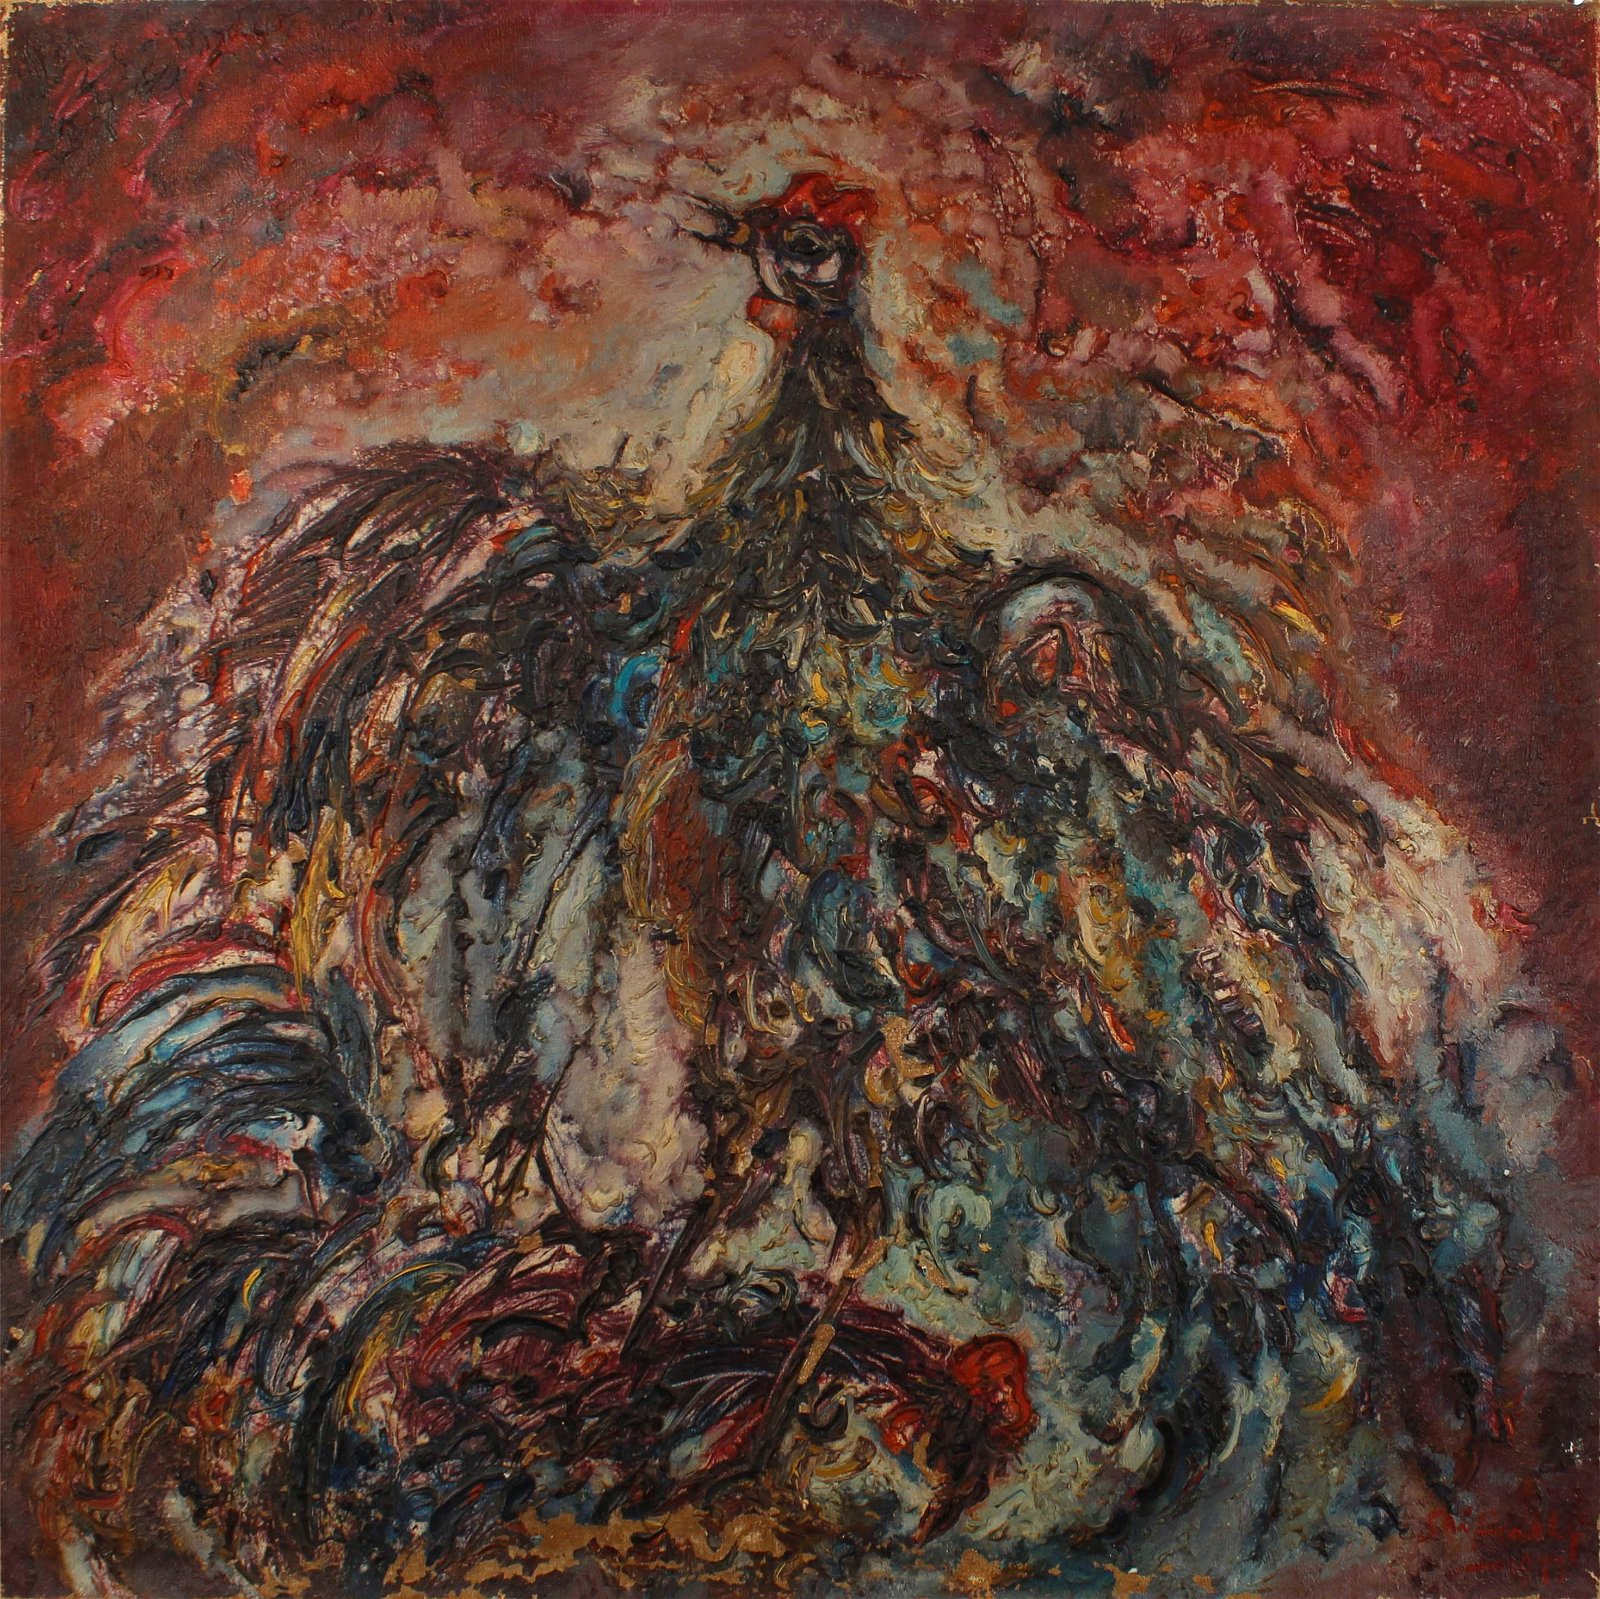 Indonesia Srihadhy, cockfighting, Oil on Canvas 1977